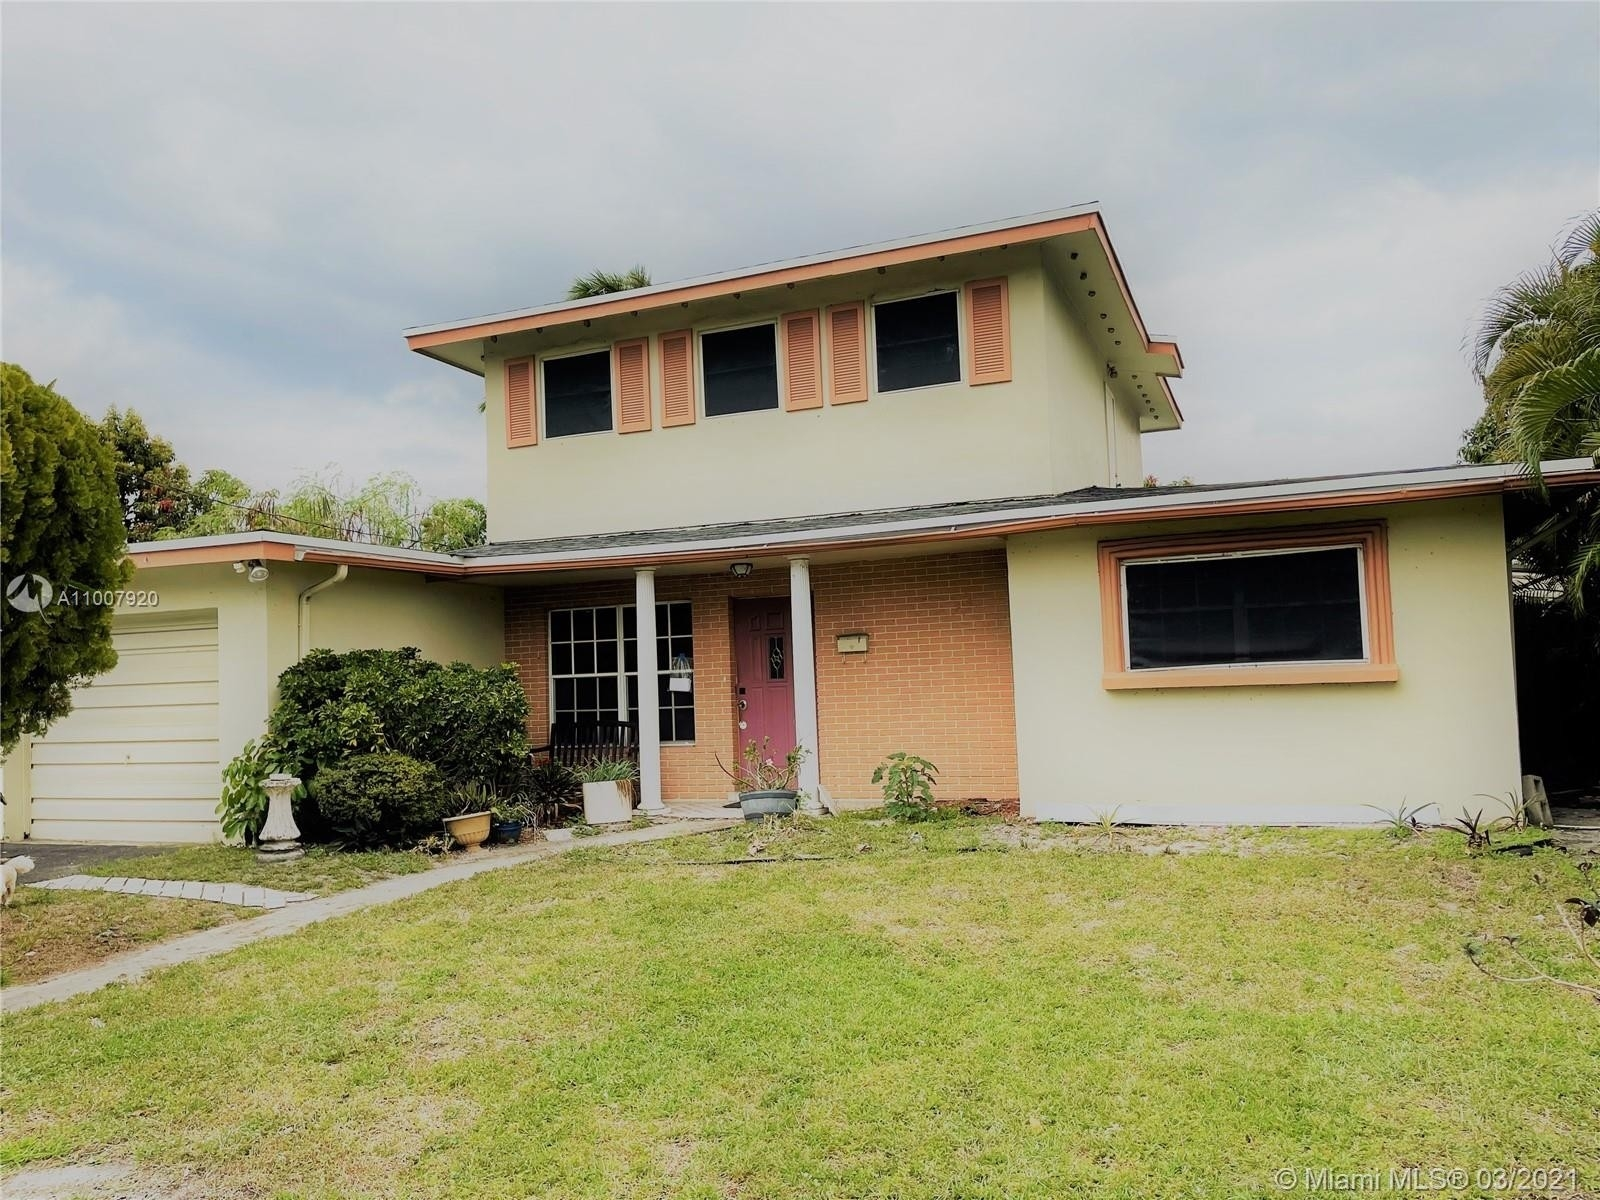 Single Family Home for Sale at Lauderdale Lakes North Gate, Lauderdale Lakes, FL 33309